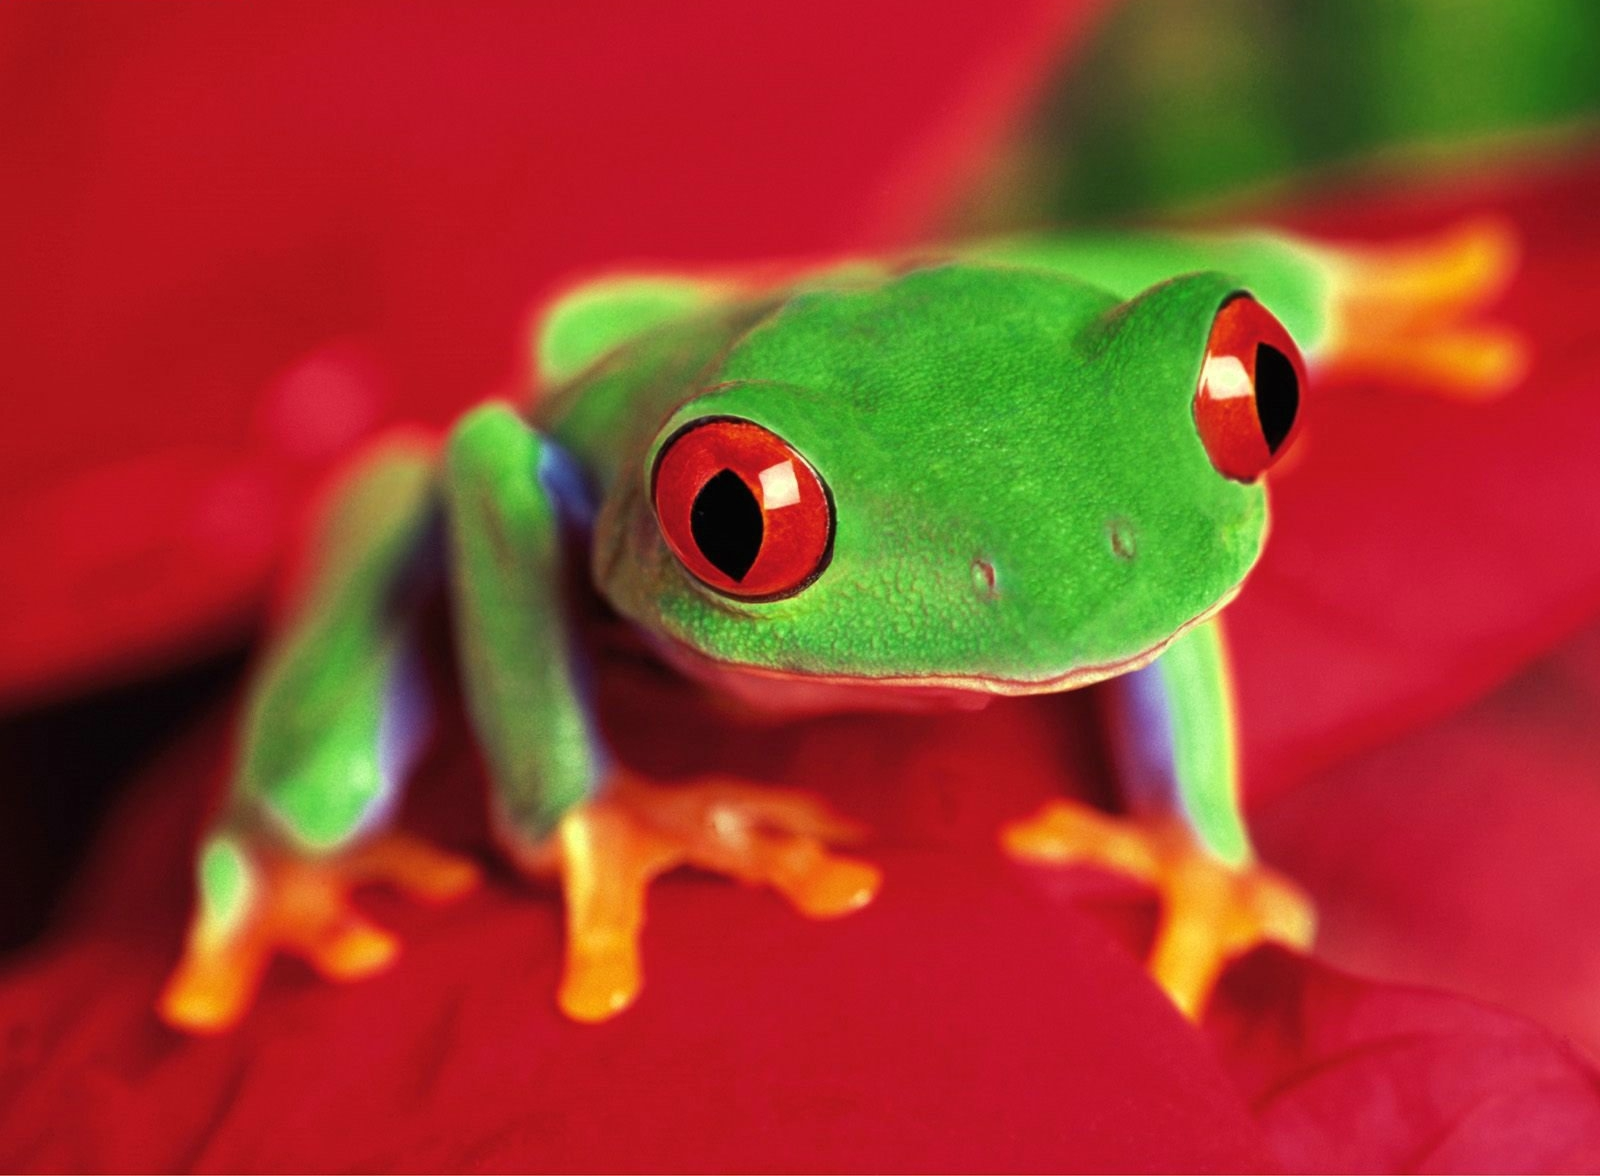 Frog Beautiful Skin Colors - Pets Cute and Docile